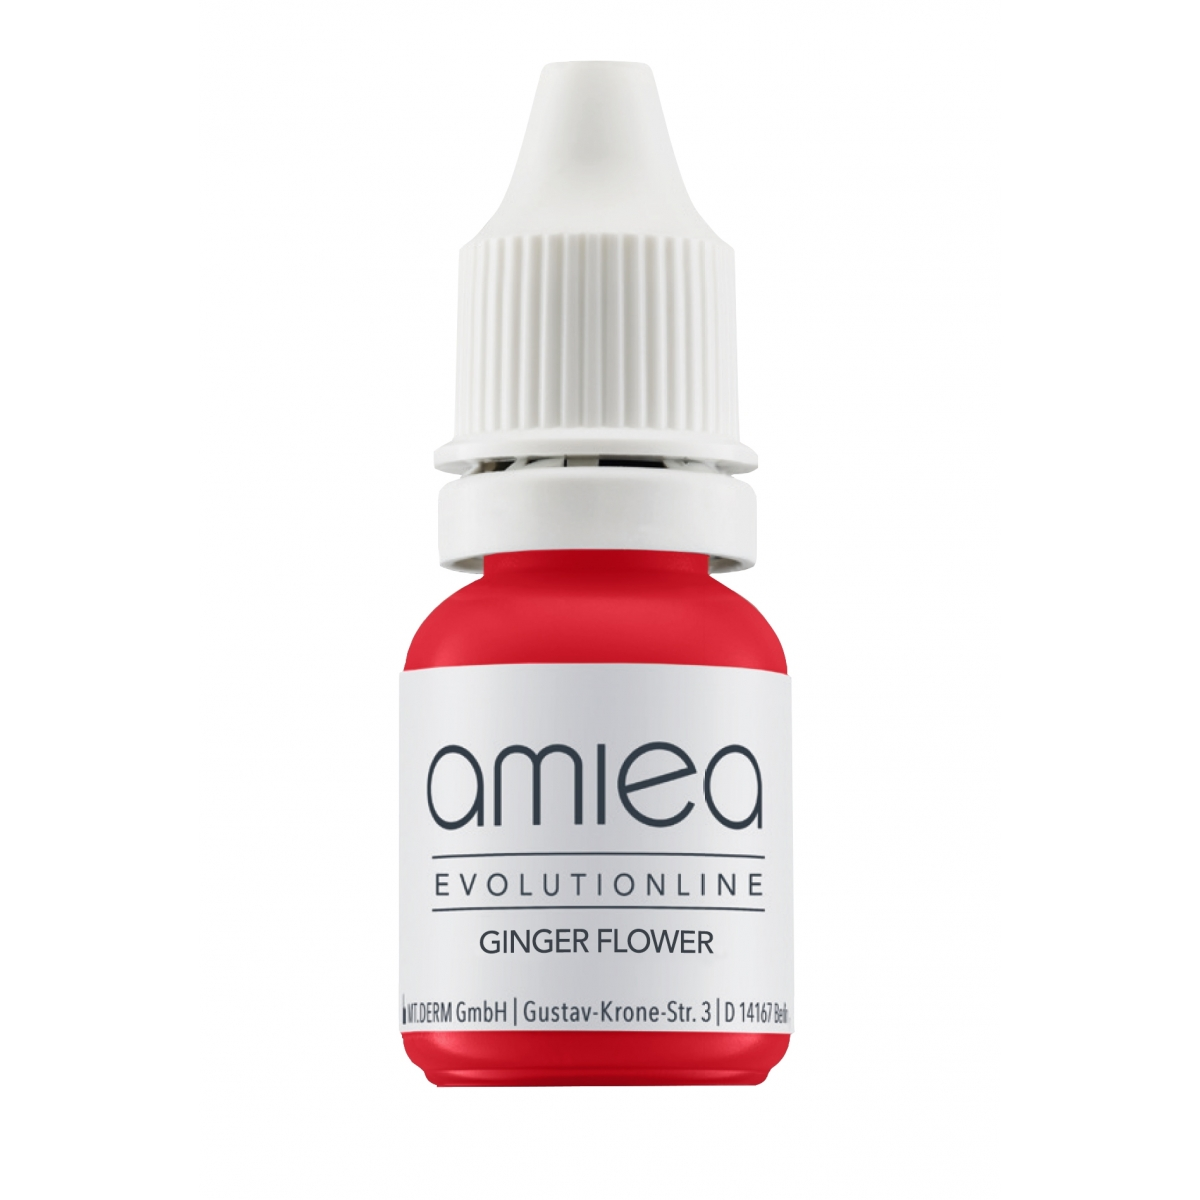 EVOLUTION LINE (5ml) - PIGMENT GINGER FLOWER AMIEA EVOLUTIONLINE (5 ml)